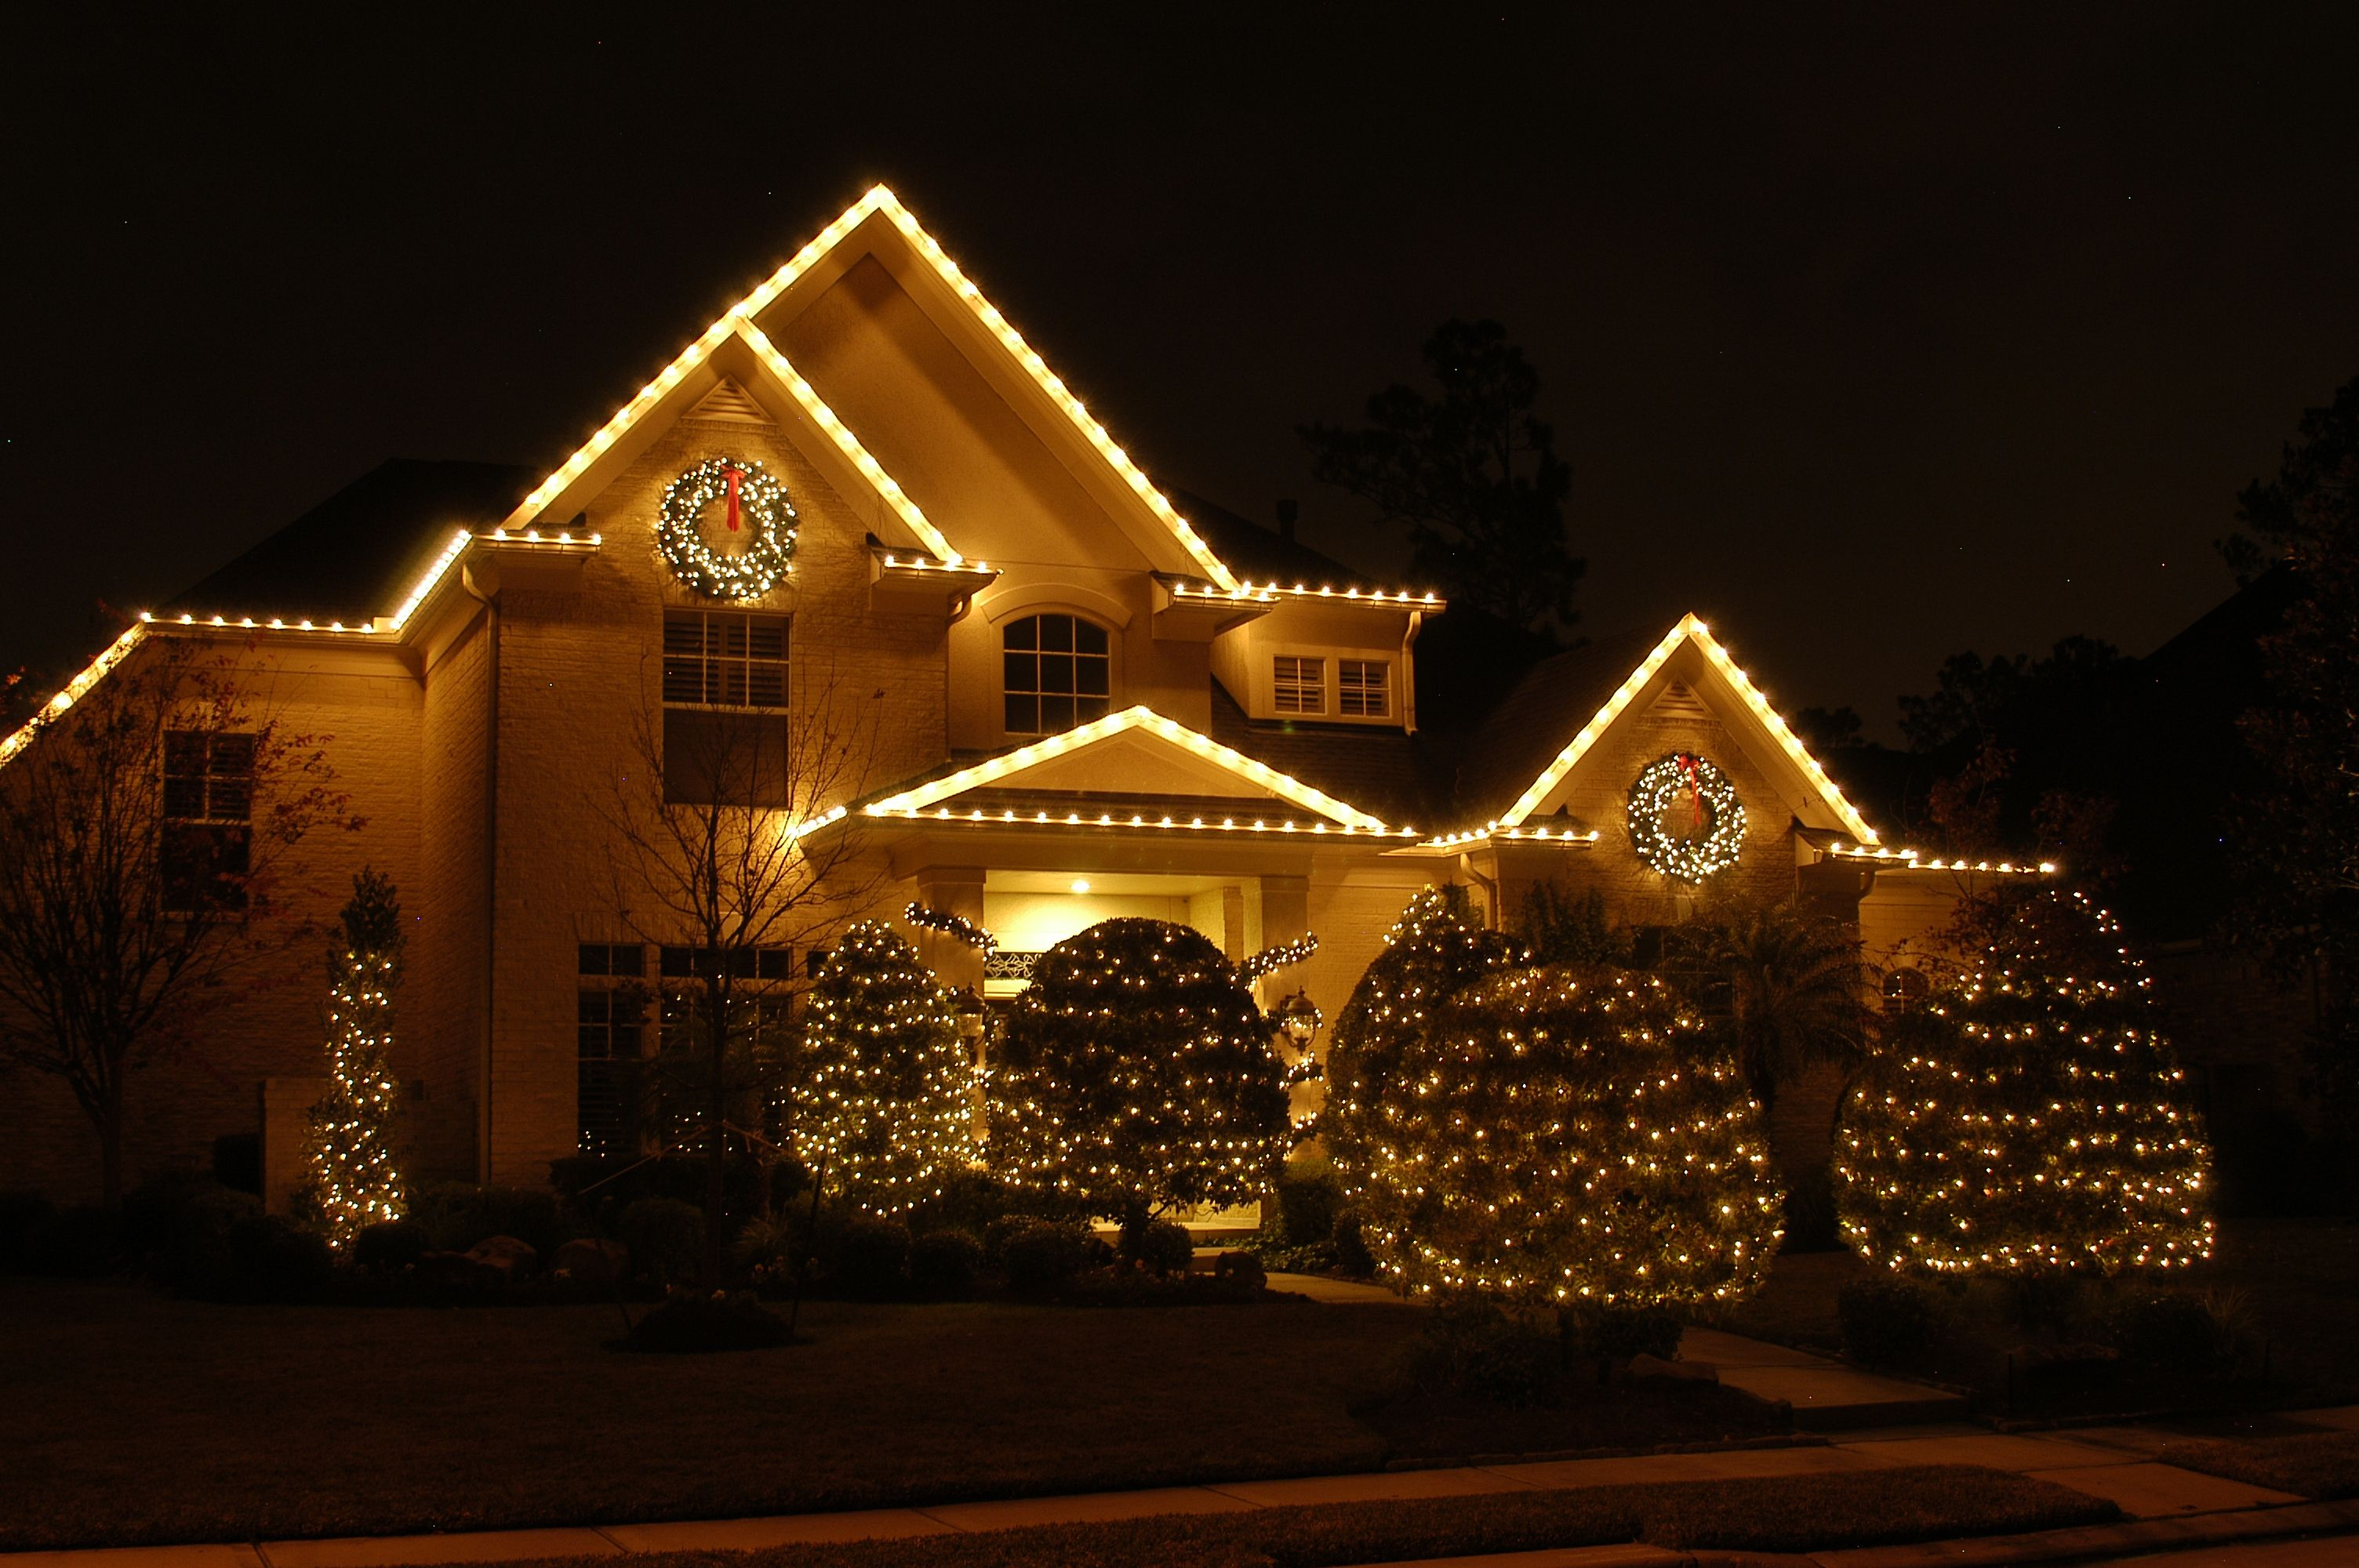 c9 christmas lights the results are classic and the cost of running them is minimal description from wilmingtonoutdoorlightscom